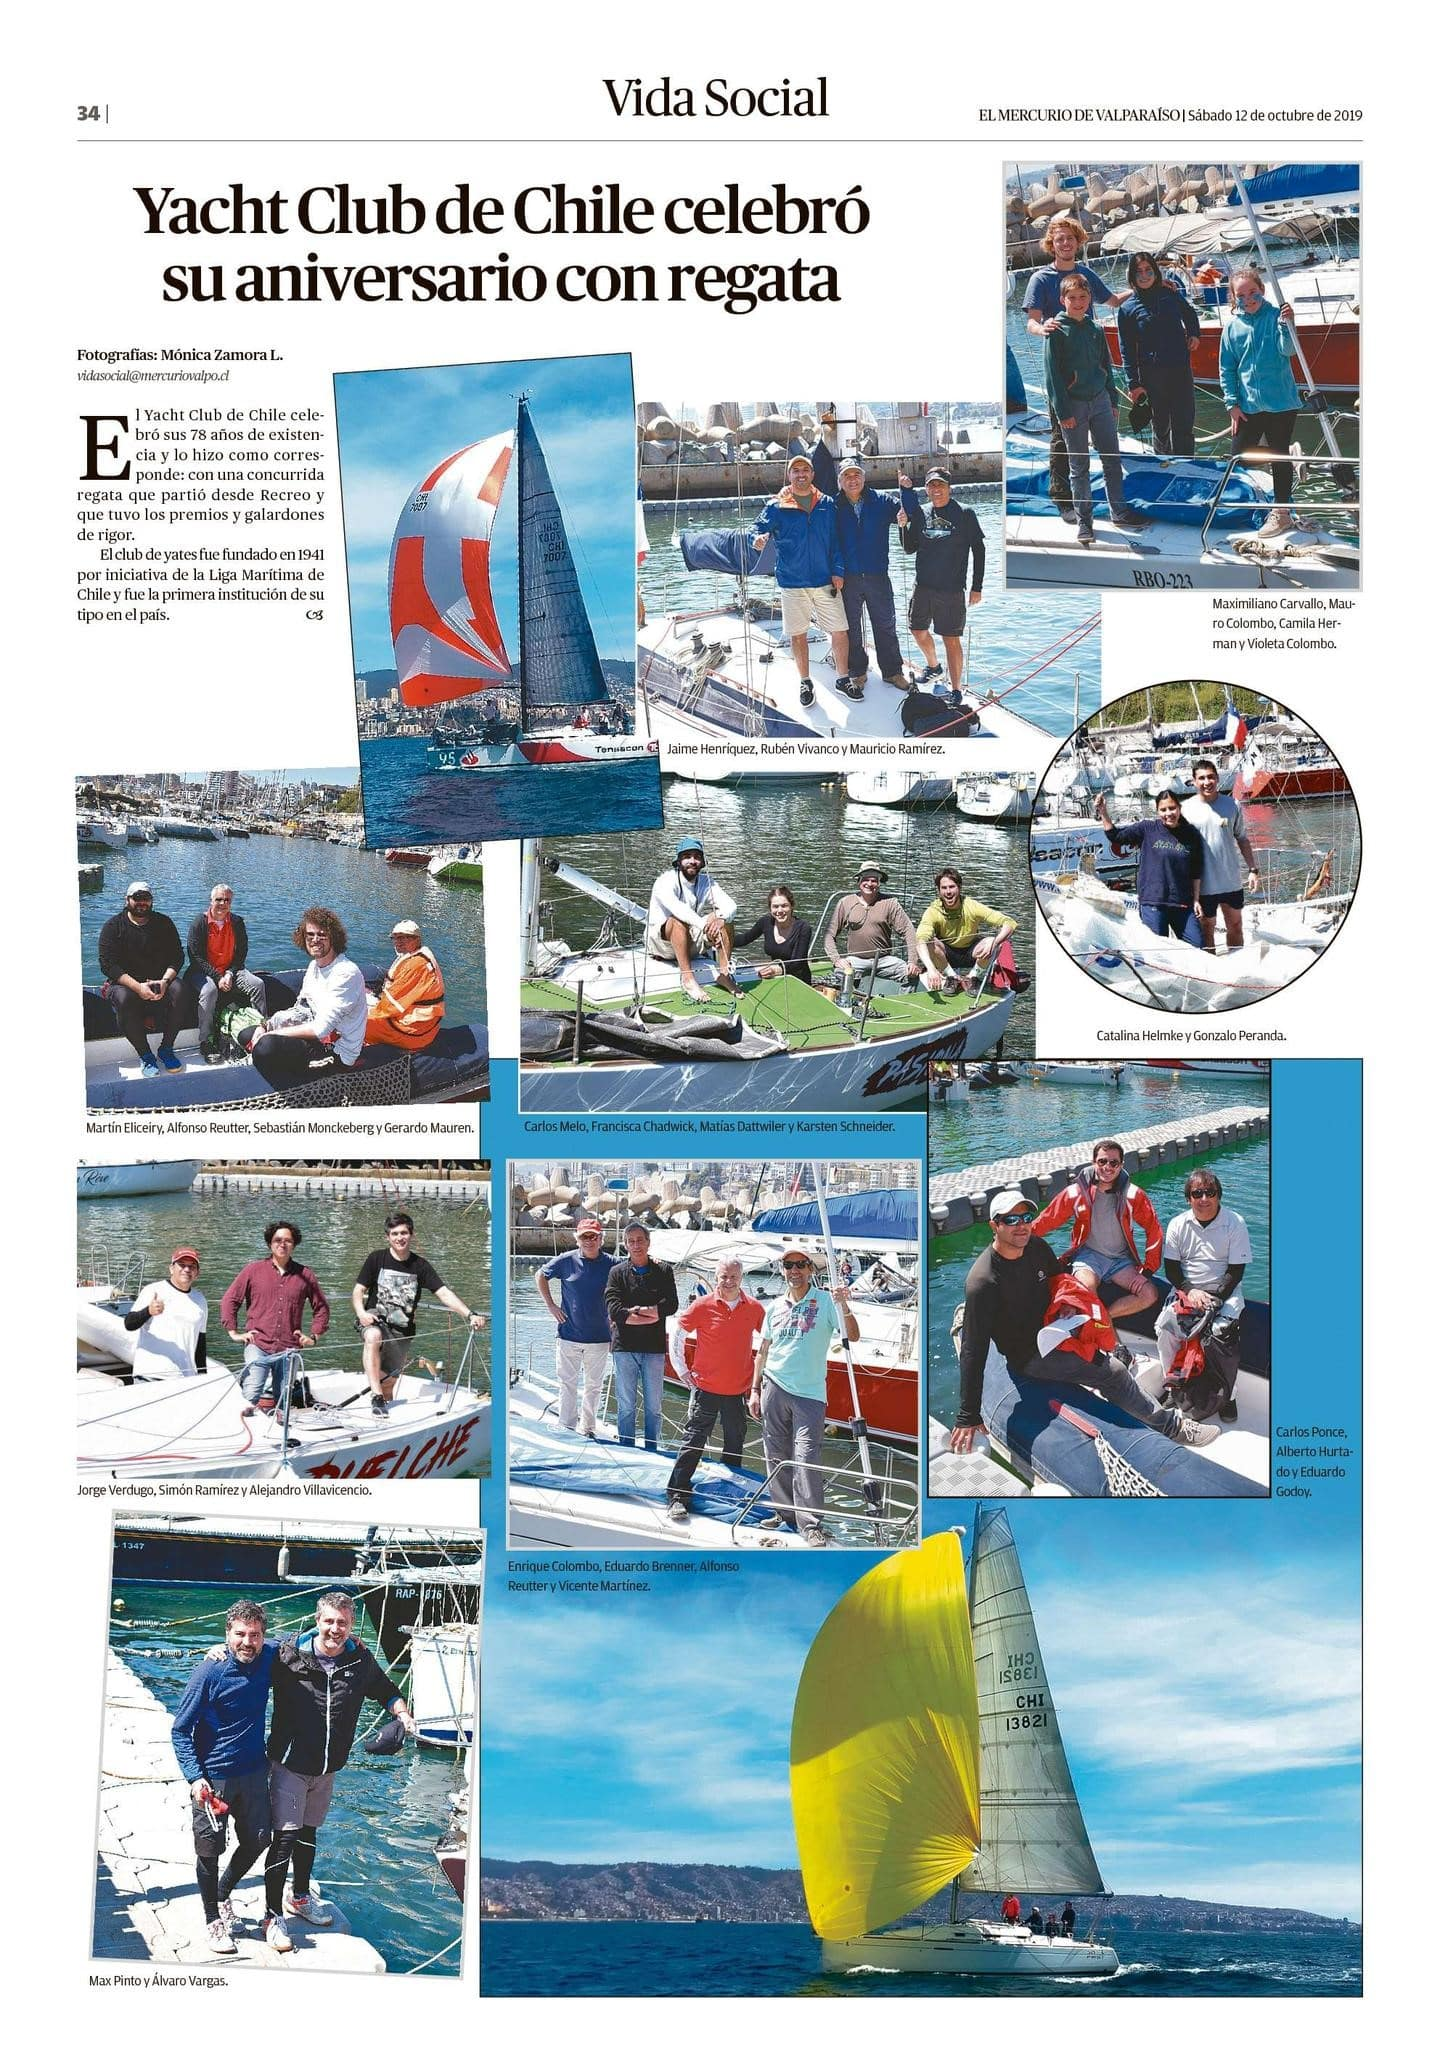 Regata Aniversario Yatch Club de Chile